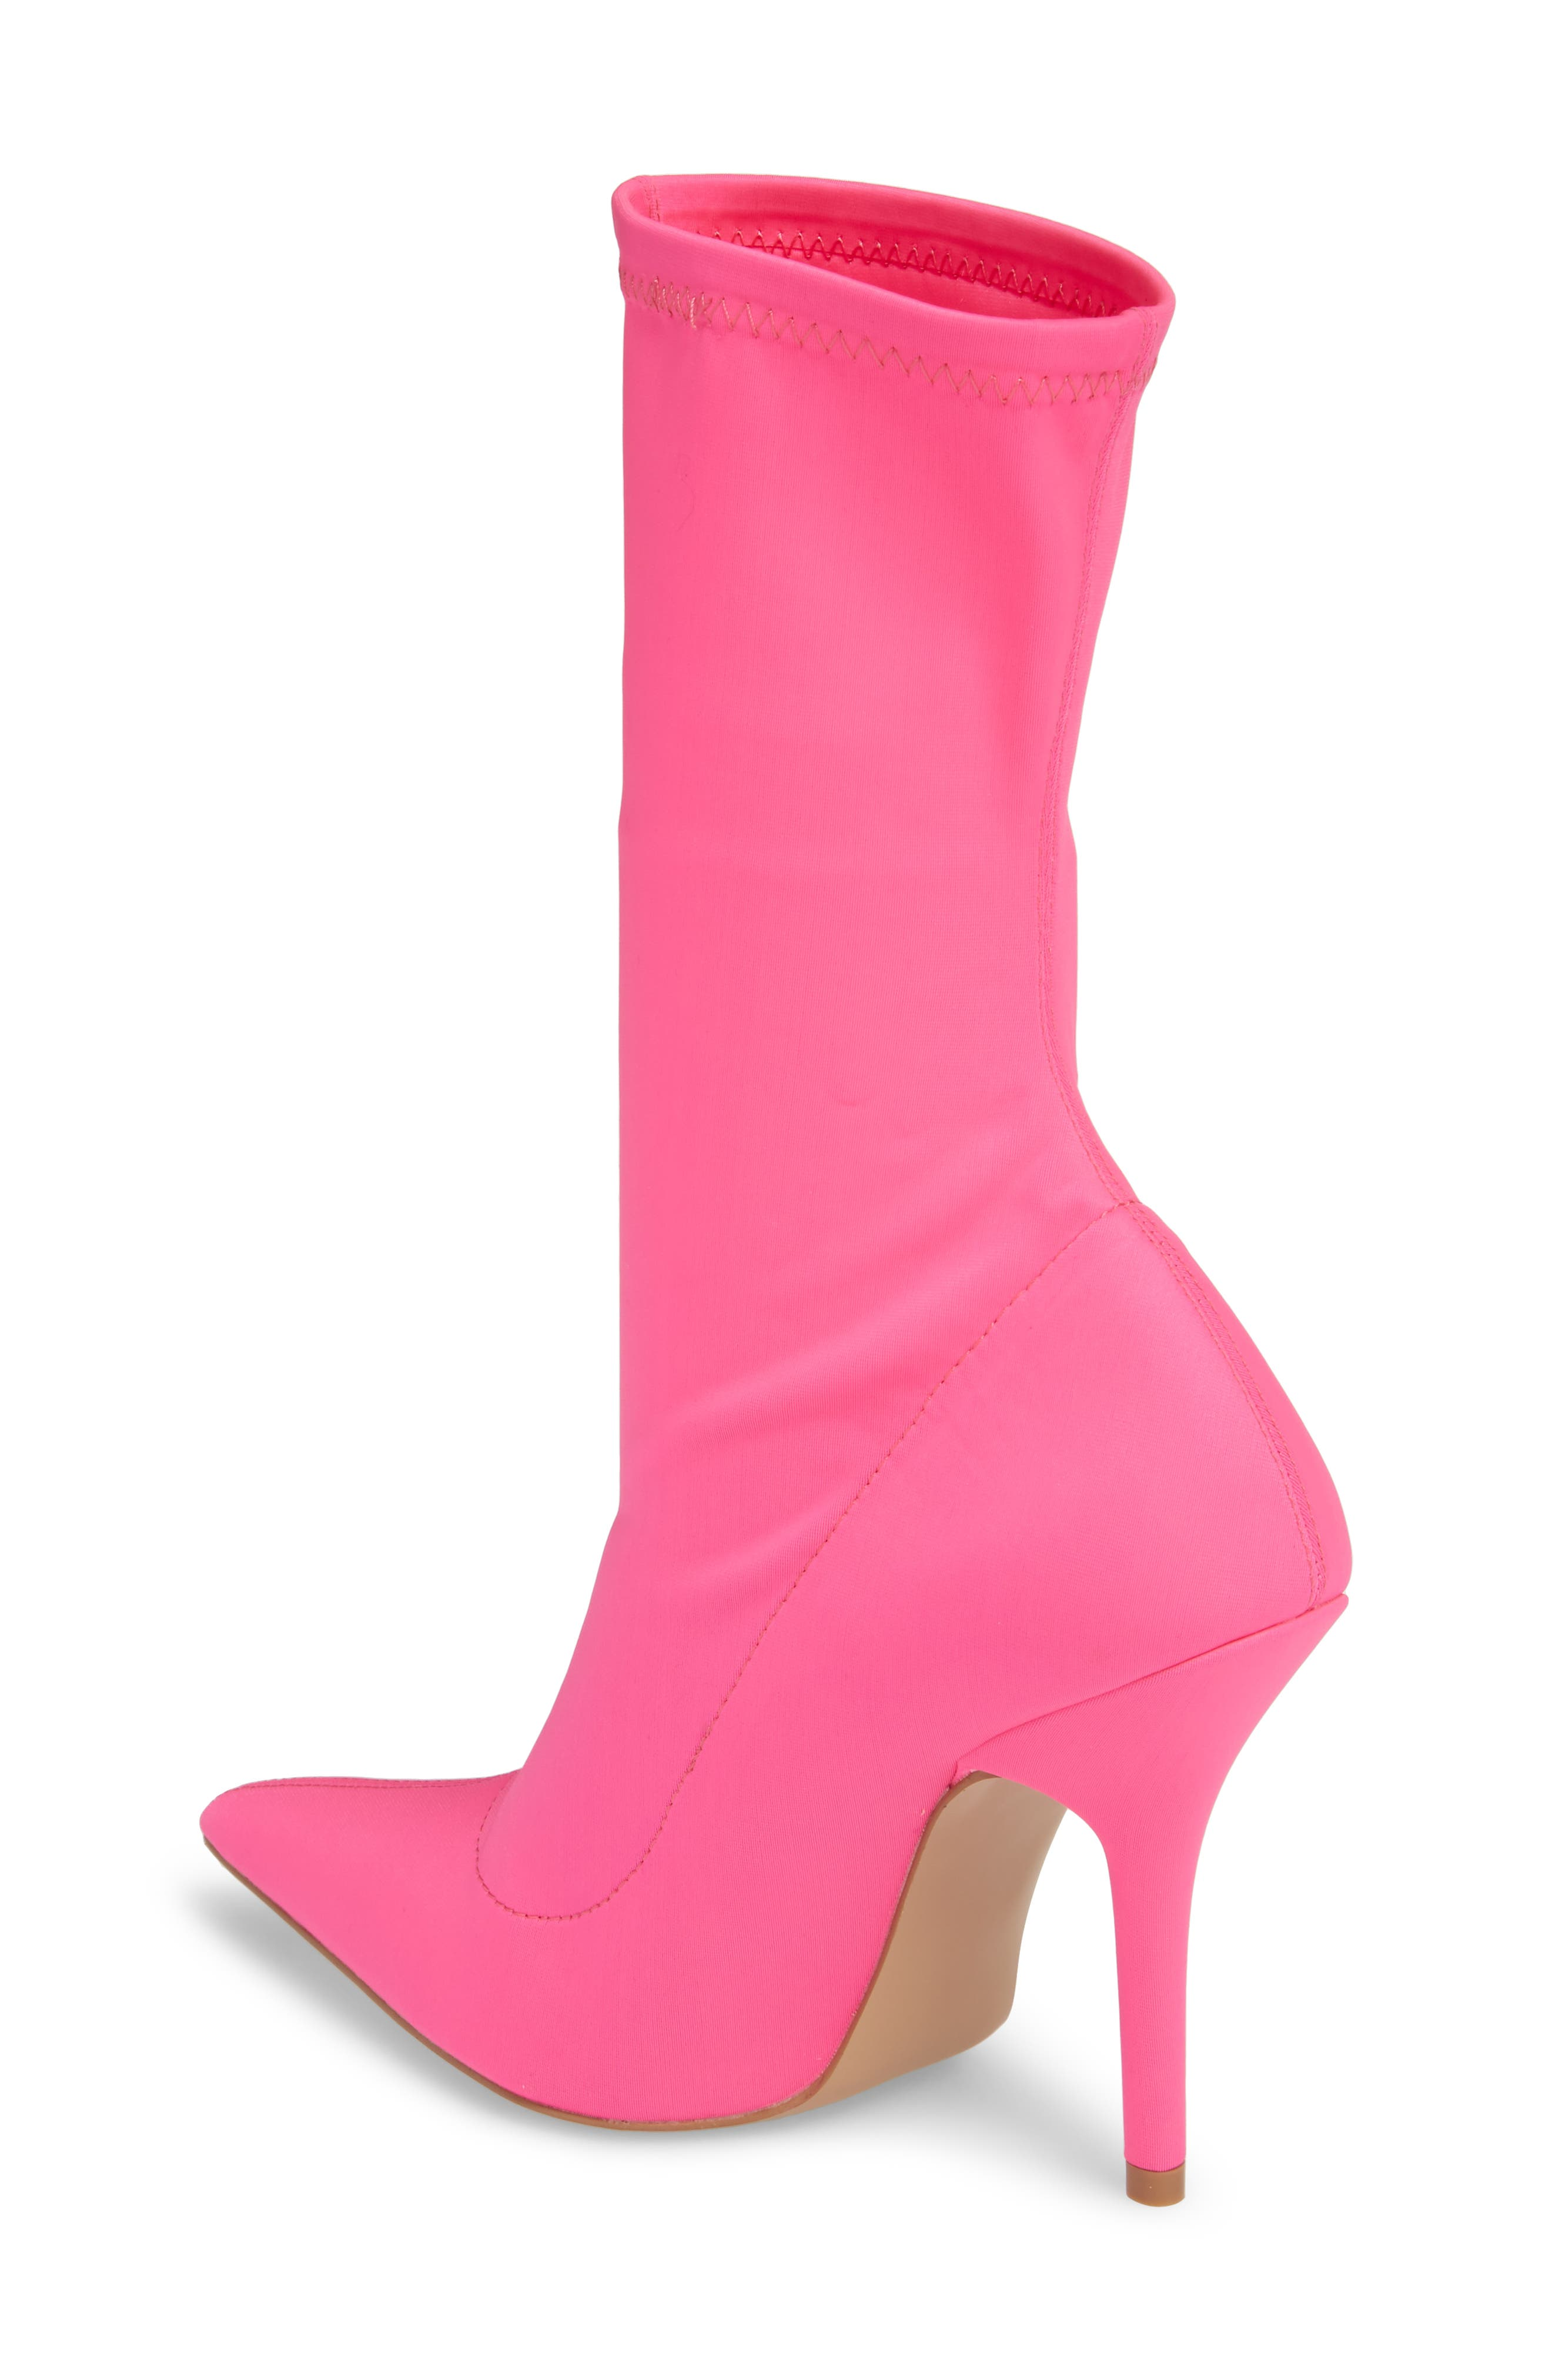 Mimi Stretch Bootie,                             Alternate thumbnail 2, color,                             Pink Faux Leather